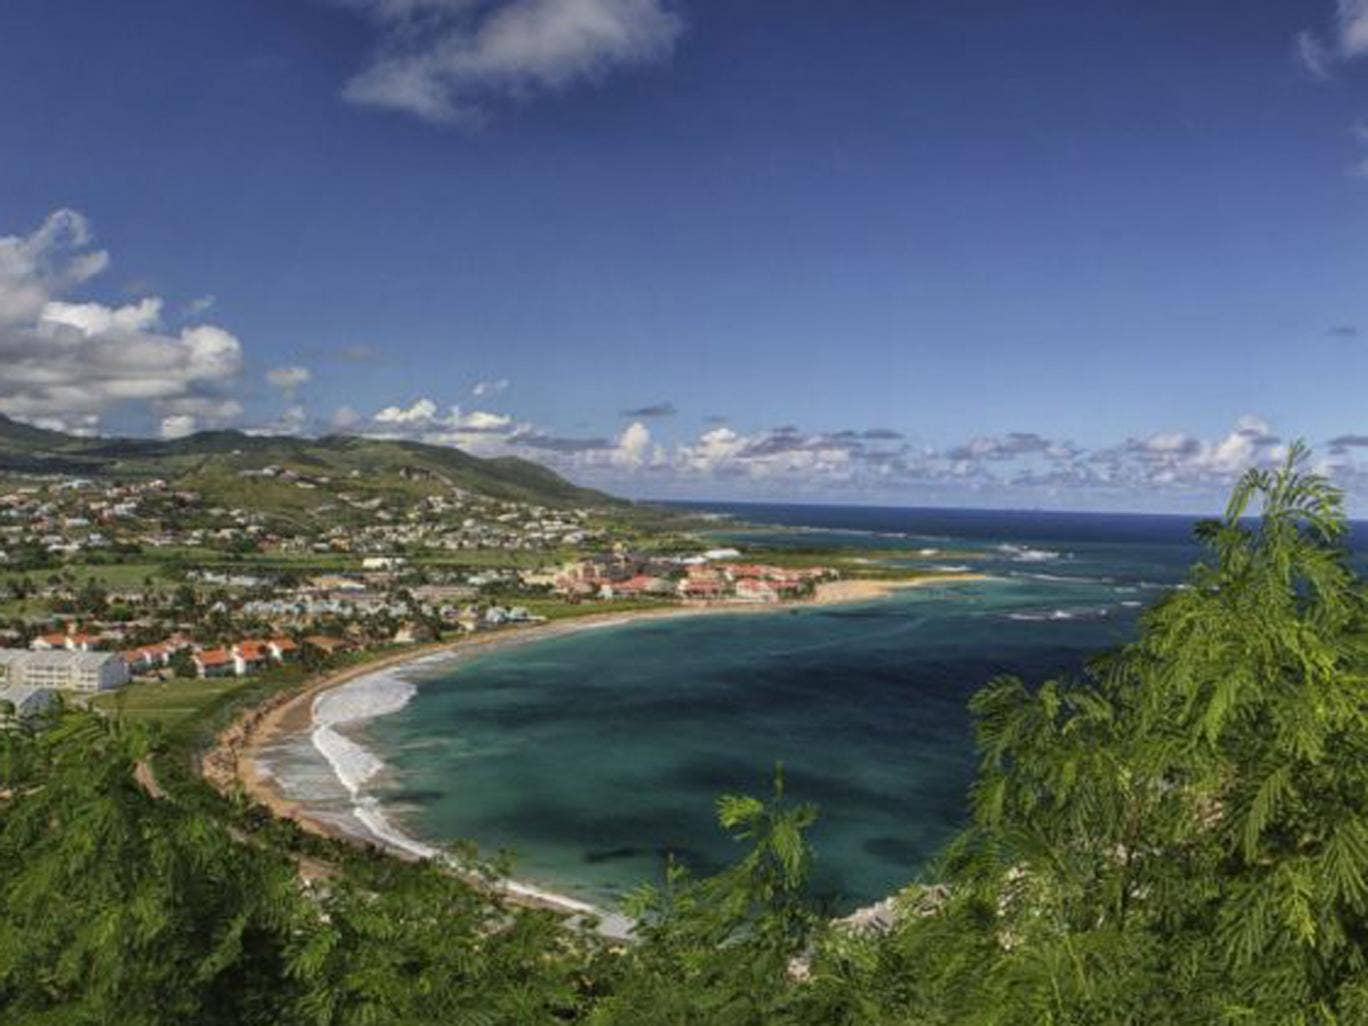 Green dream: St mKitts and Nevis is the perfect place to relax